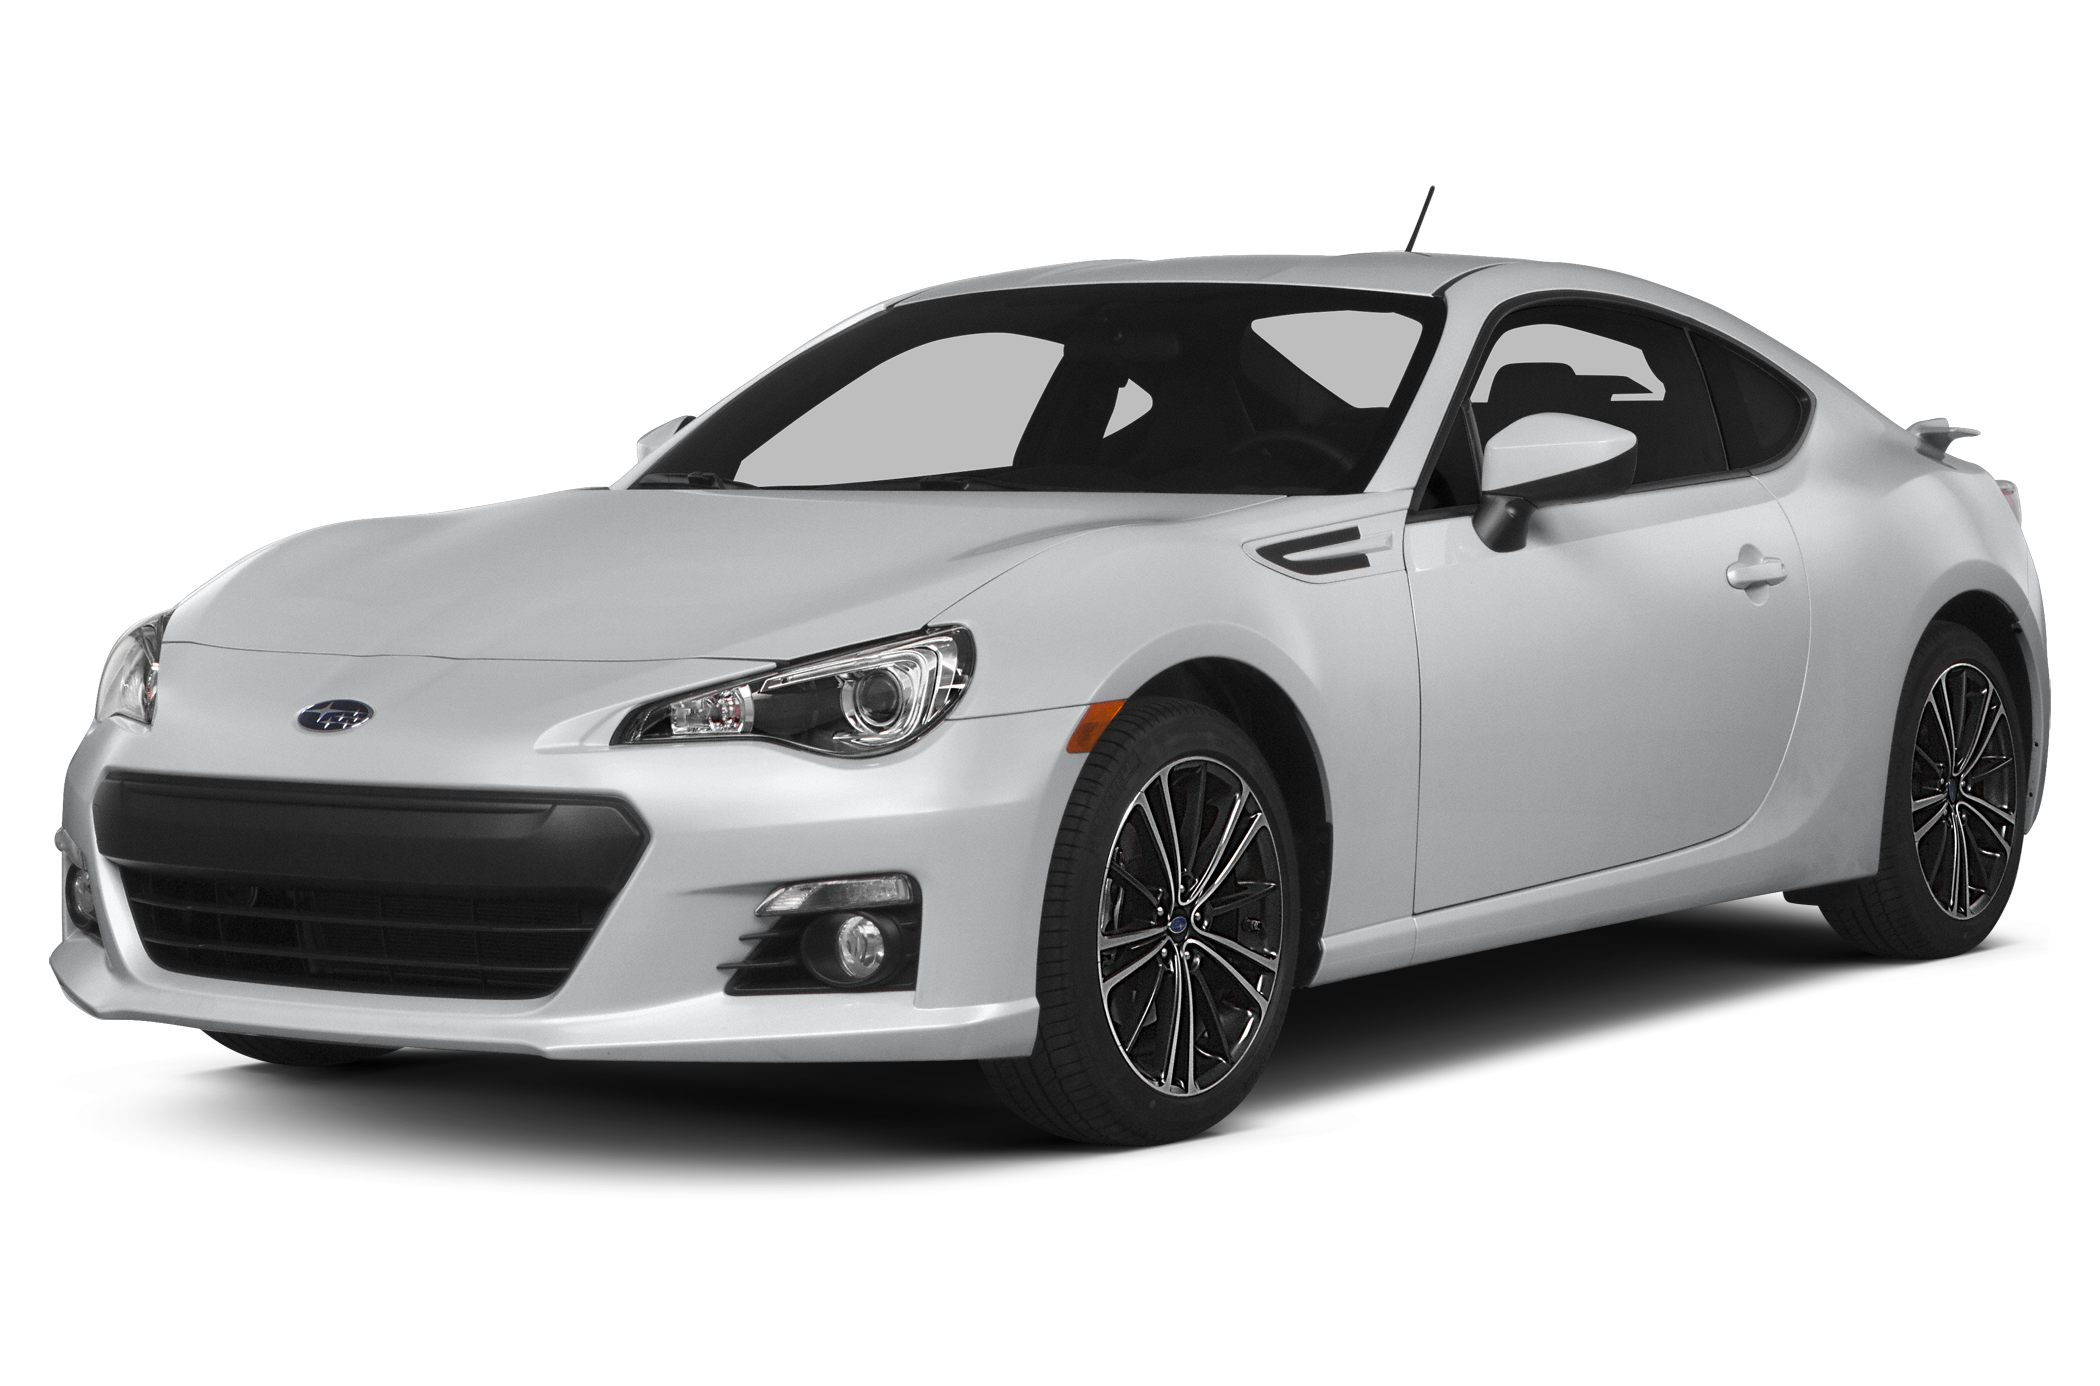 2015 Subaru BRZ Limited Coupe for sale in Moosic for $30,091 with 0 miles